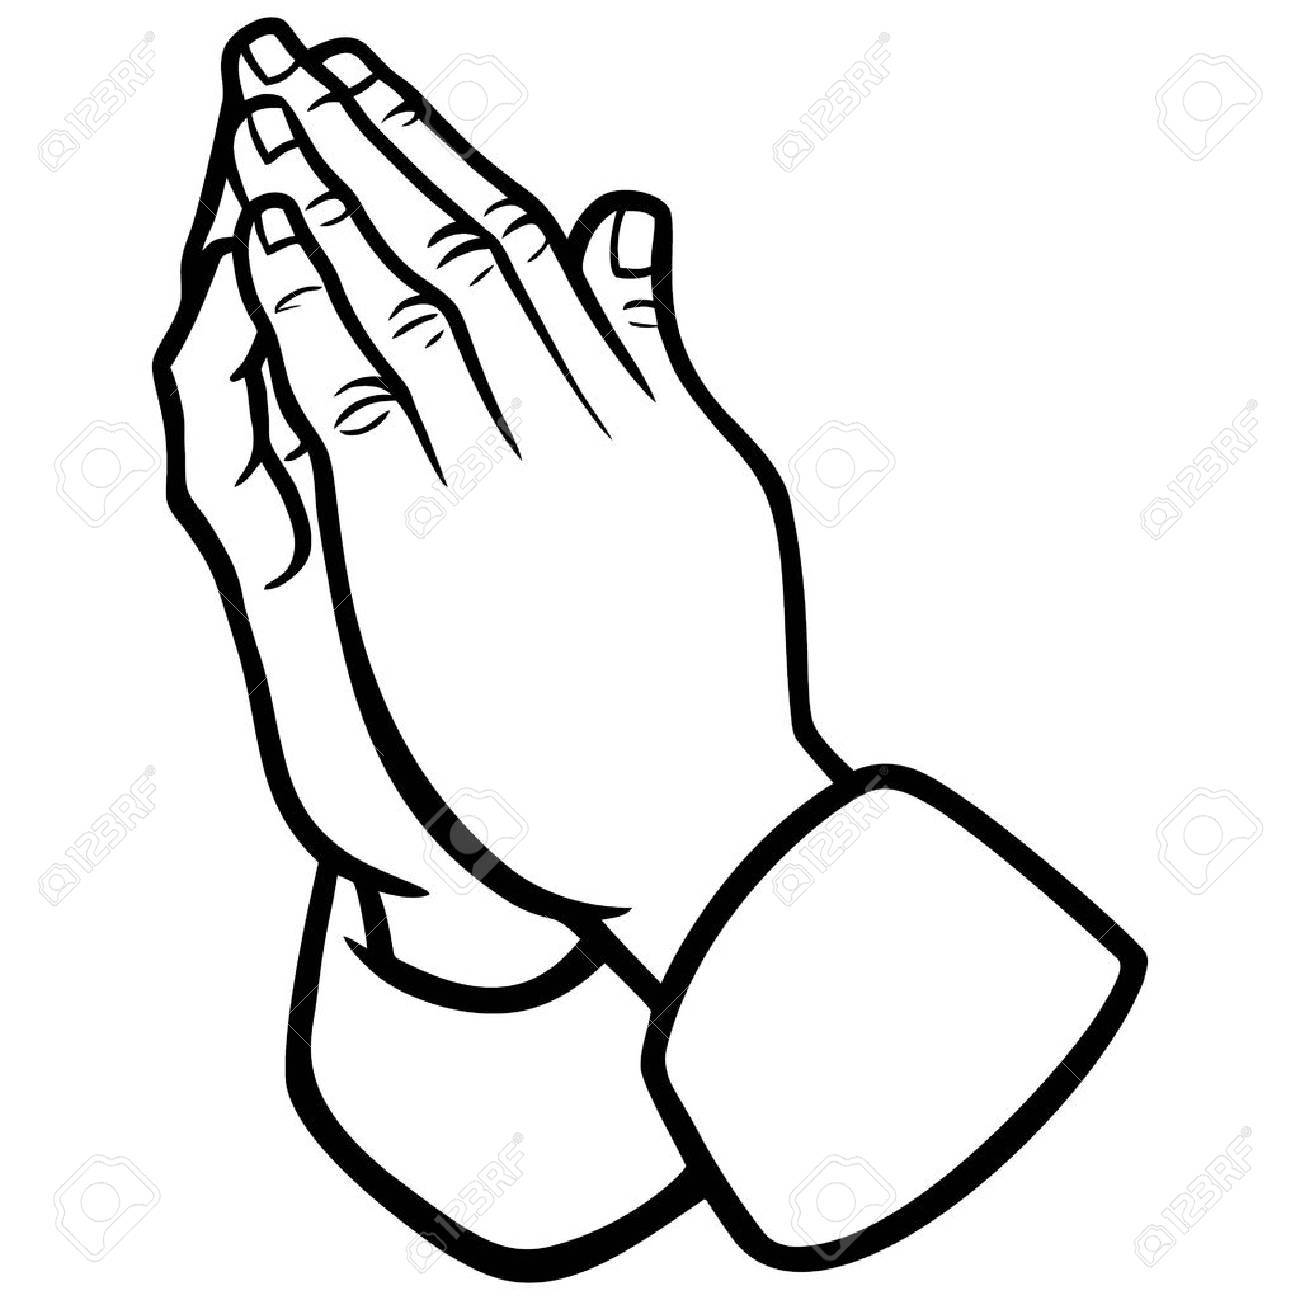 1300x1300 Praying Hands Illustration Royalty Free Cliparts, Vectors,